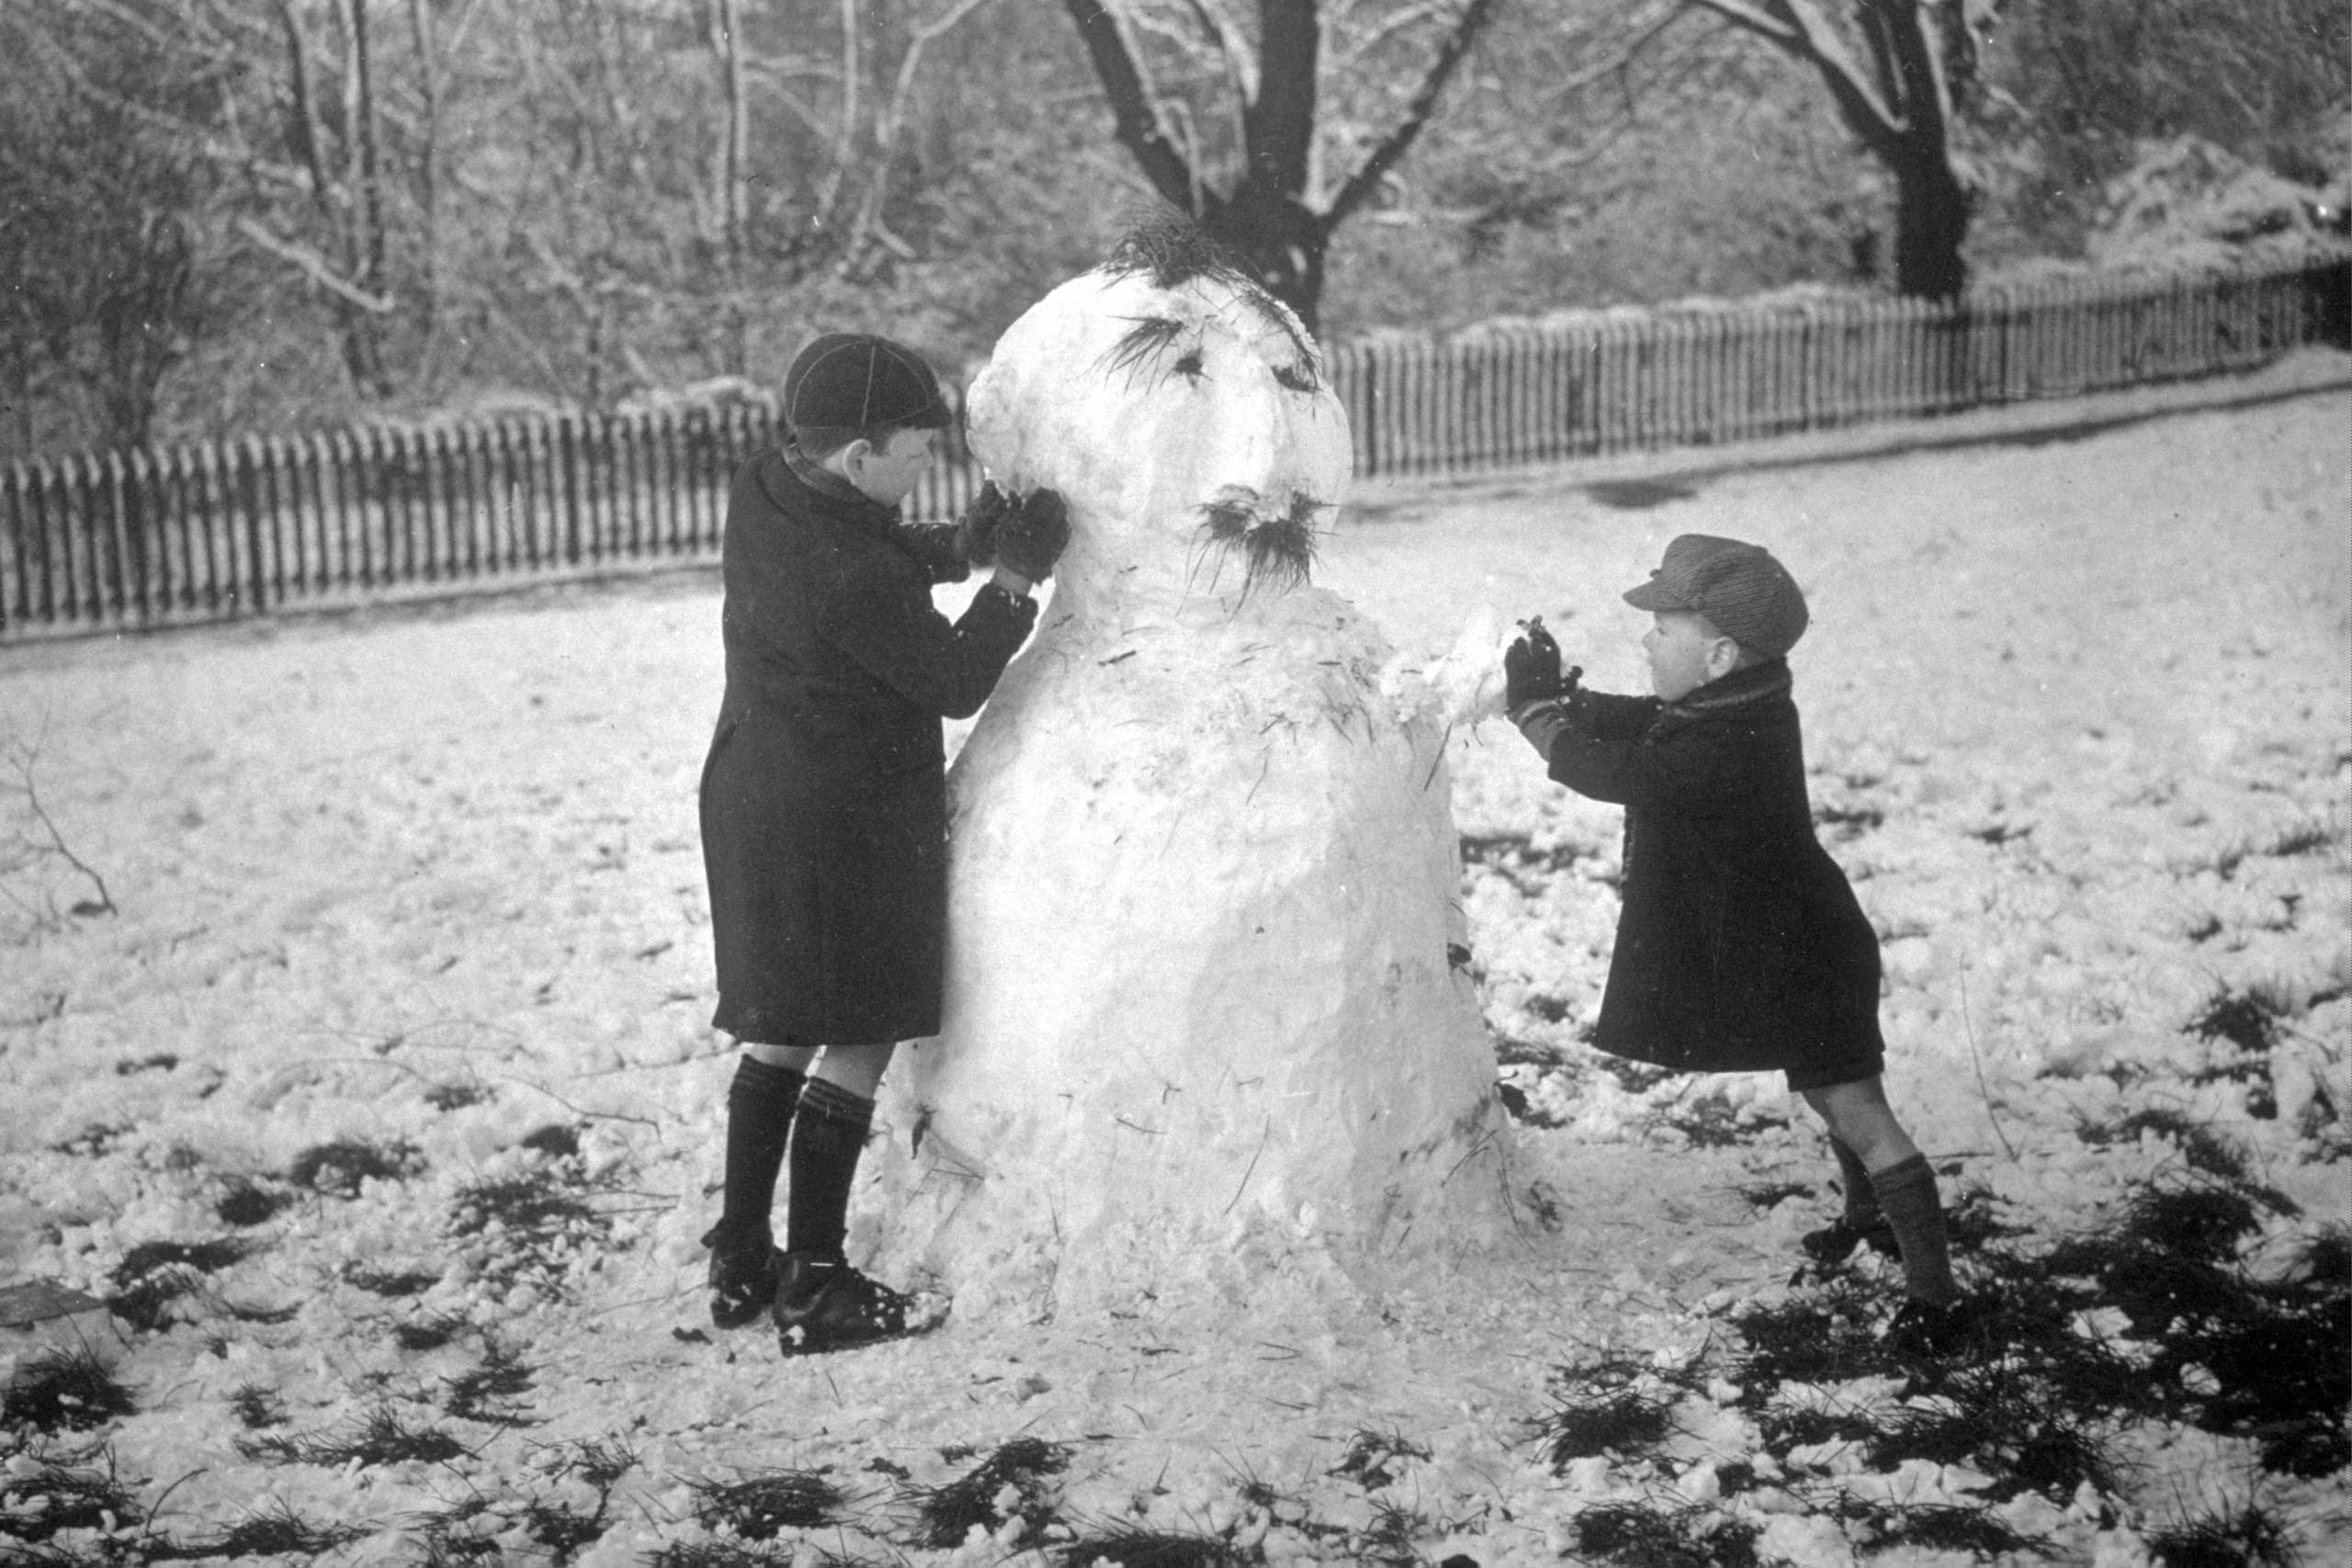 Two children making a snowman complete with 'hair' in Finsbury Park, London, circa 1935